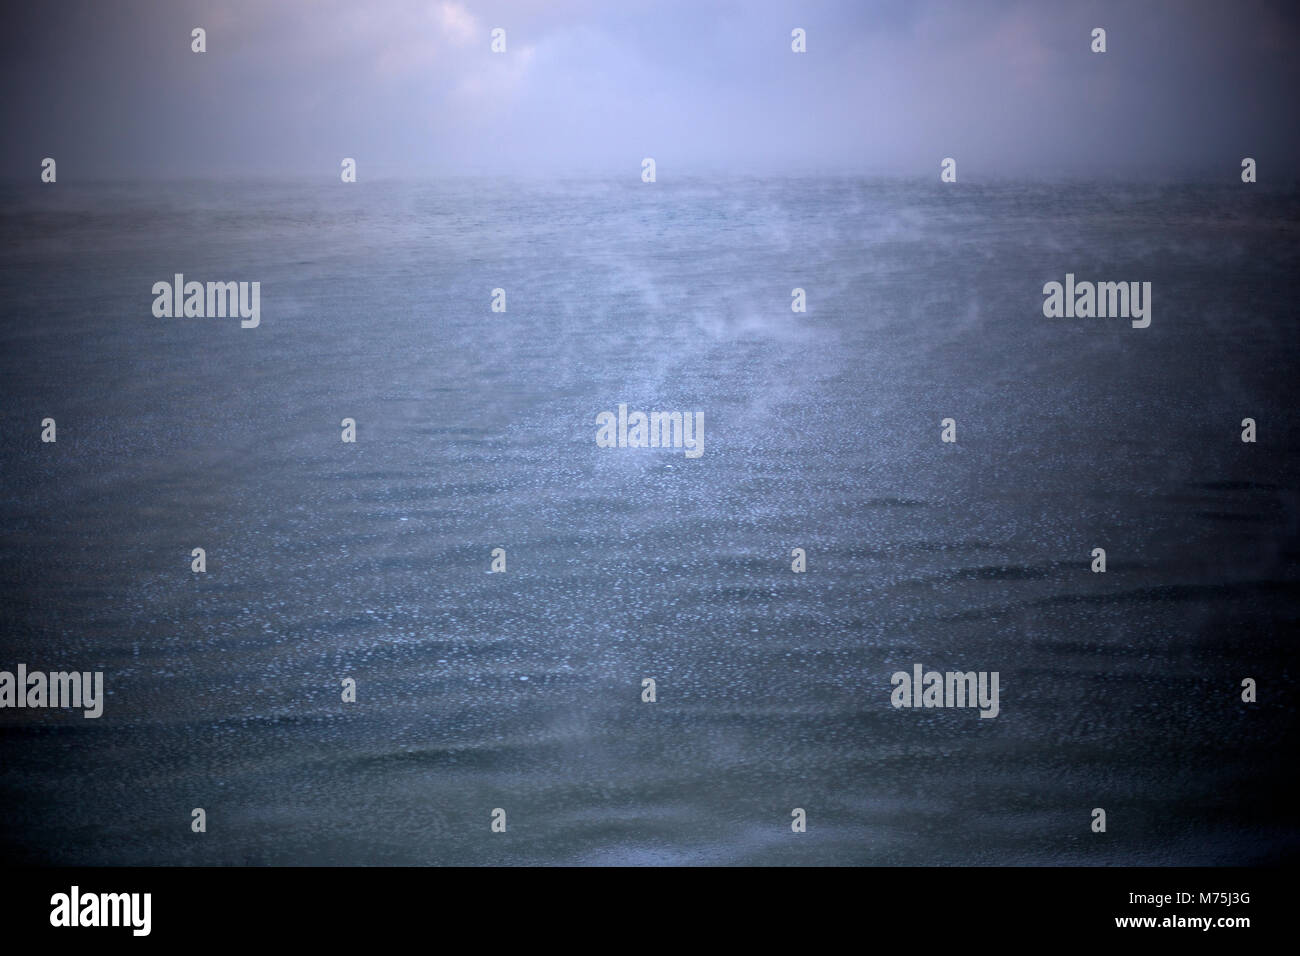 Balic sea at winter - Stock Image